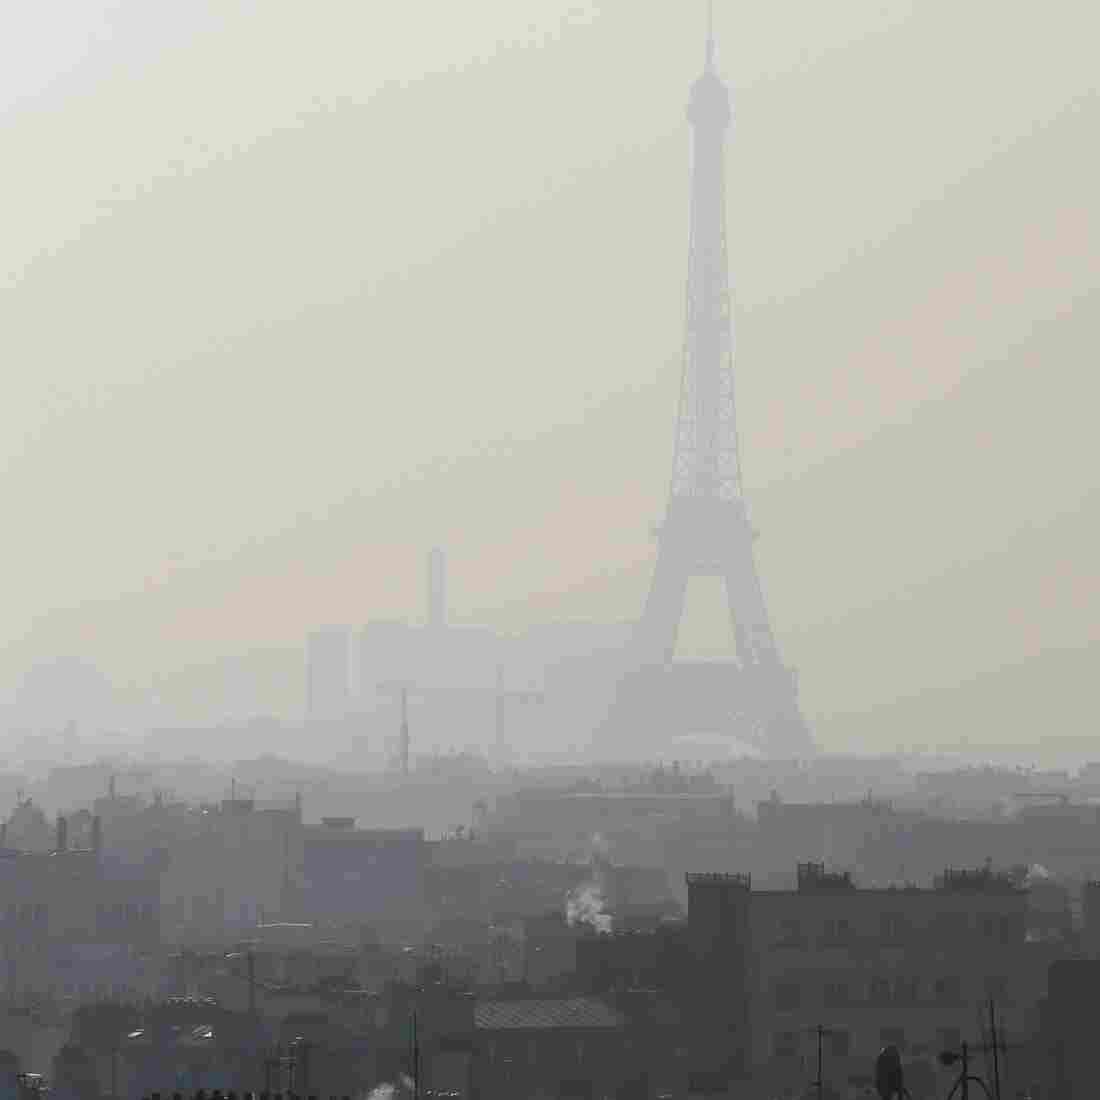 Paris Bans Some Cars For A Day To Battle Smog